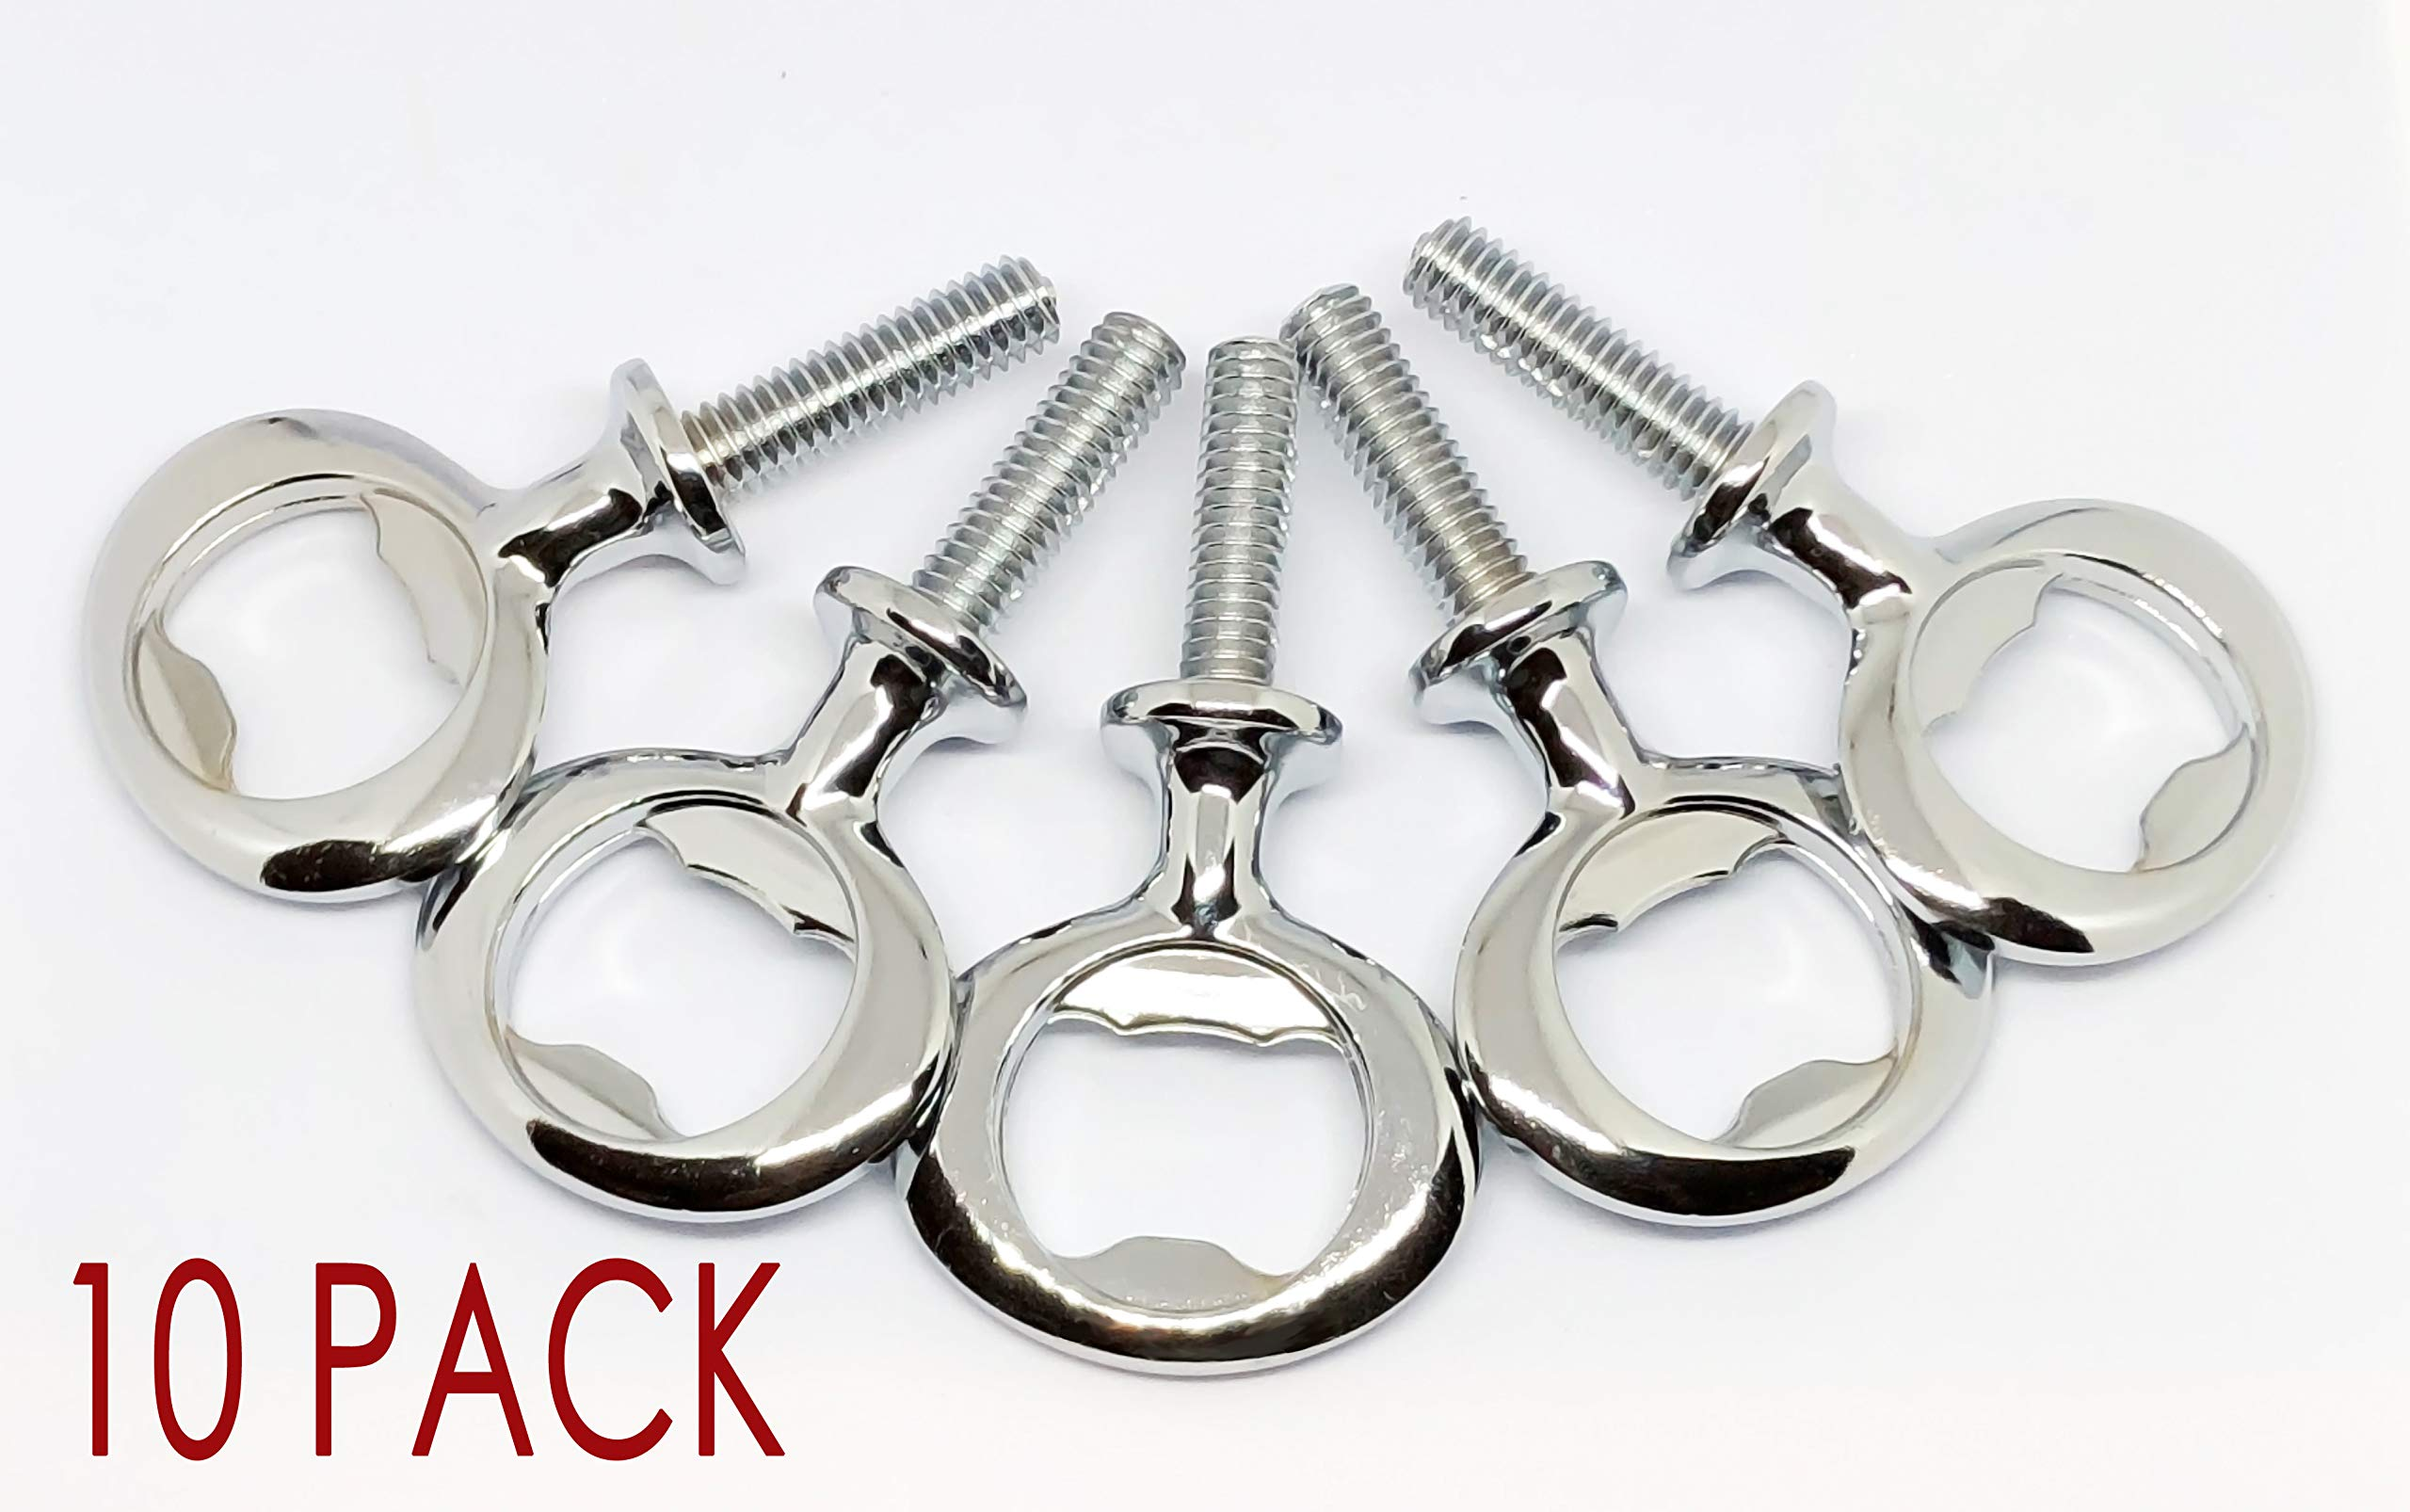 Chrome Bottle Opener Hardware Kit for Wood Turning 10 Pack by C and C Stock